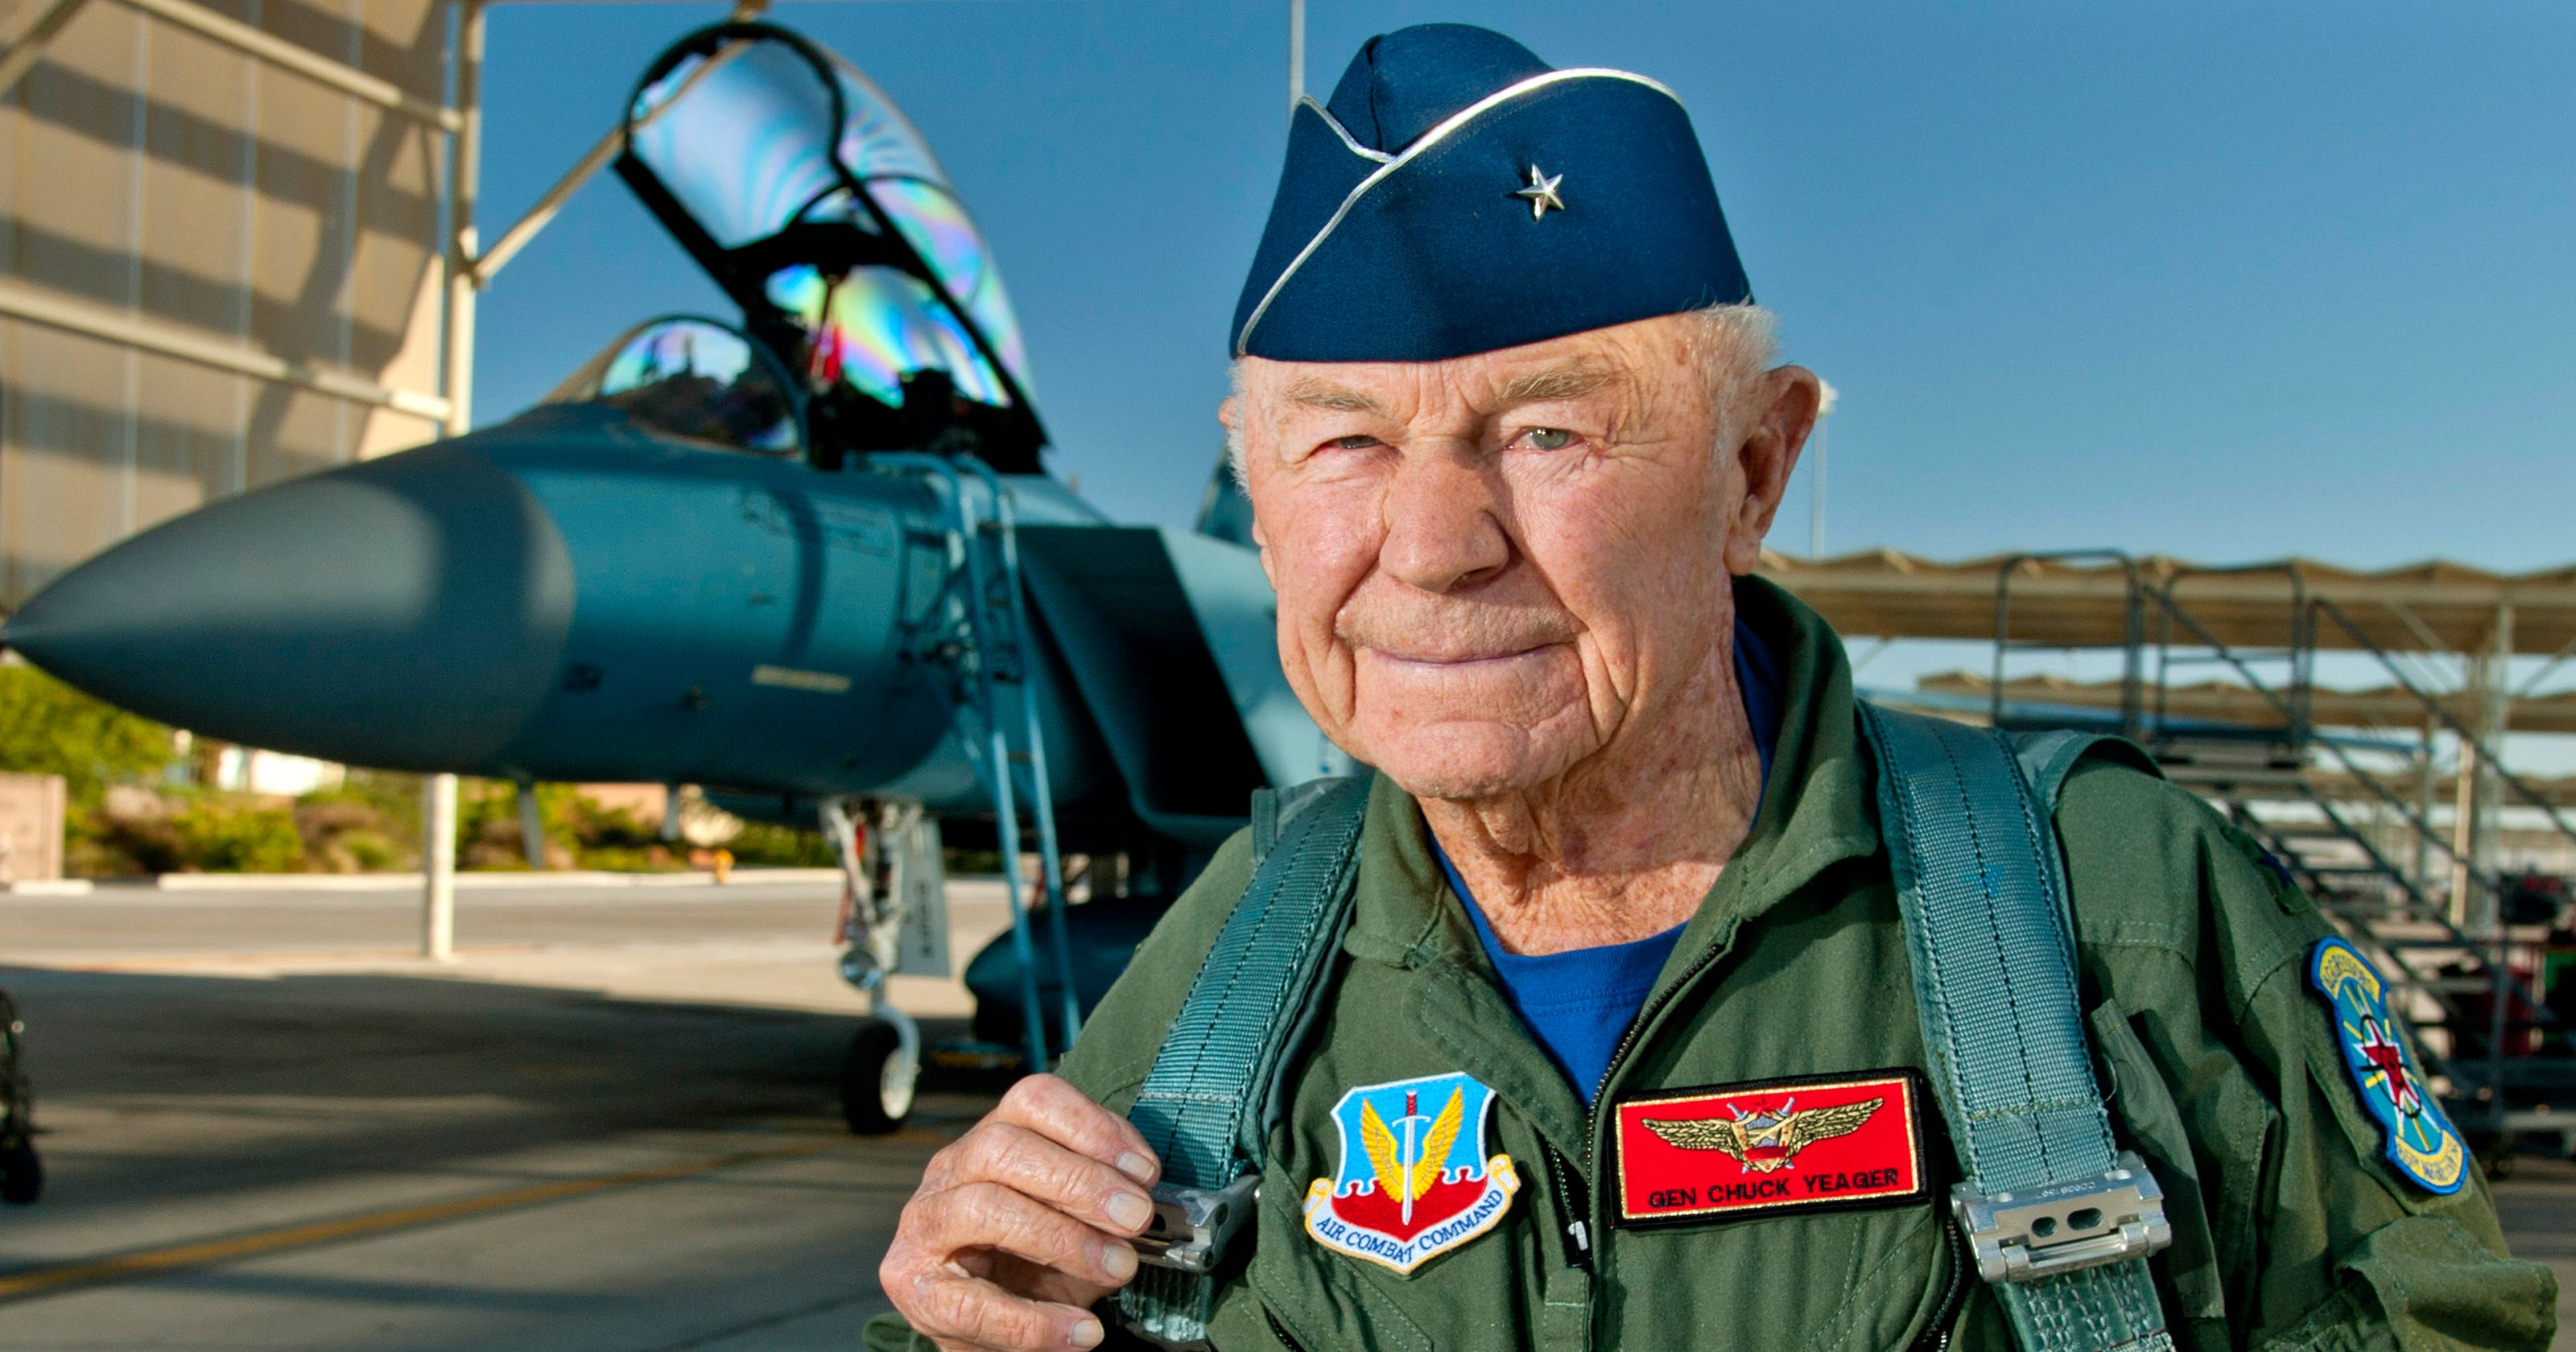 'America's greatest Pilot' Chuck Yeager, first person to break sound barrier, dies at 97